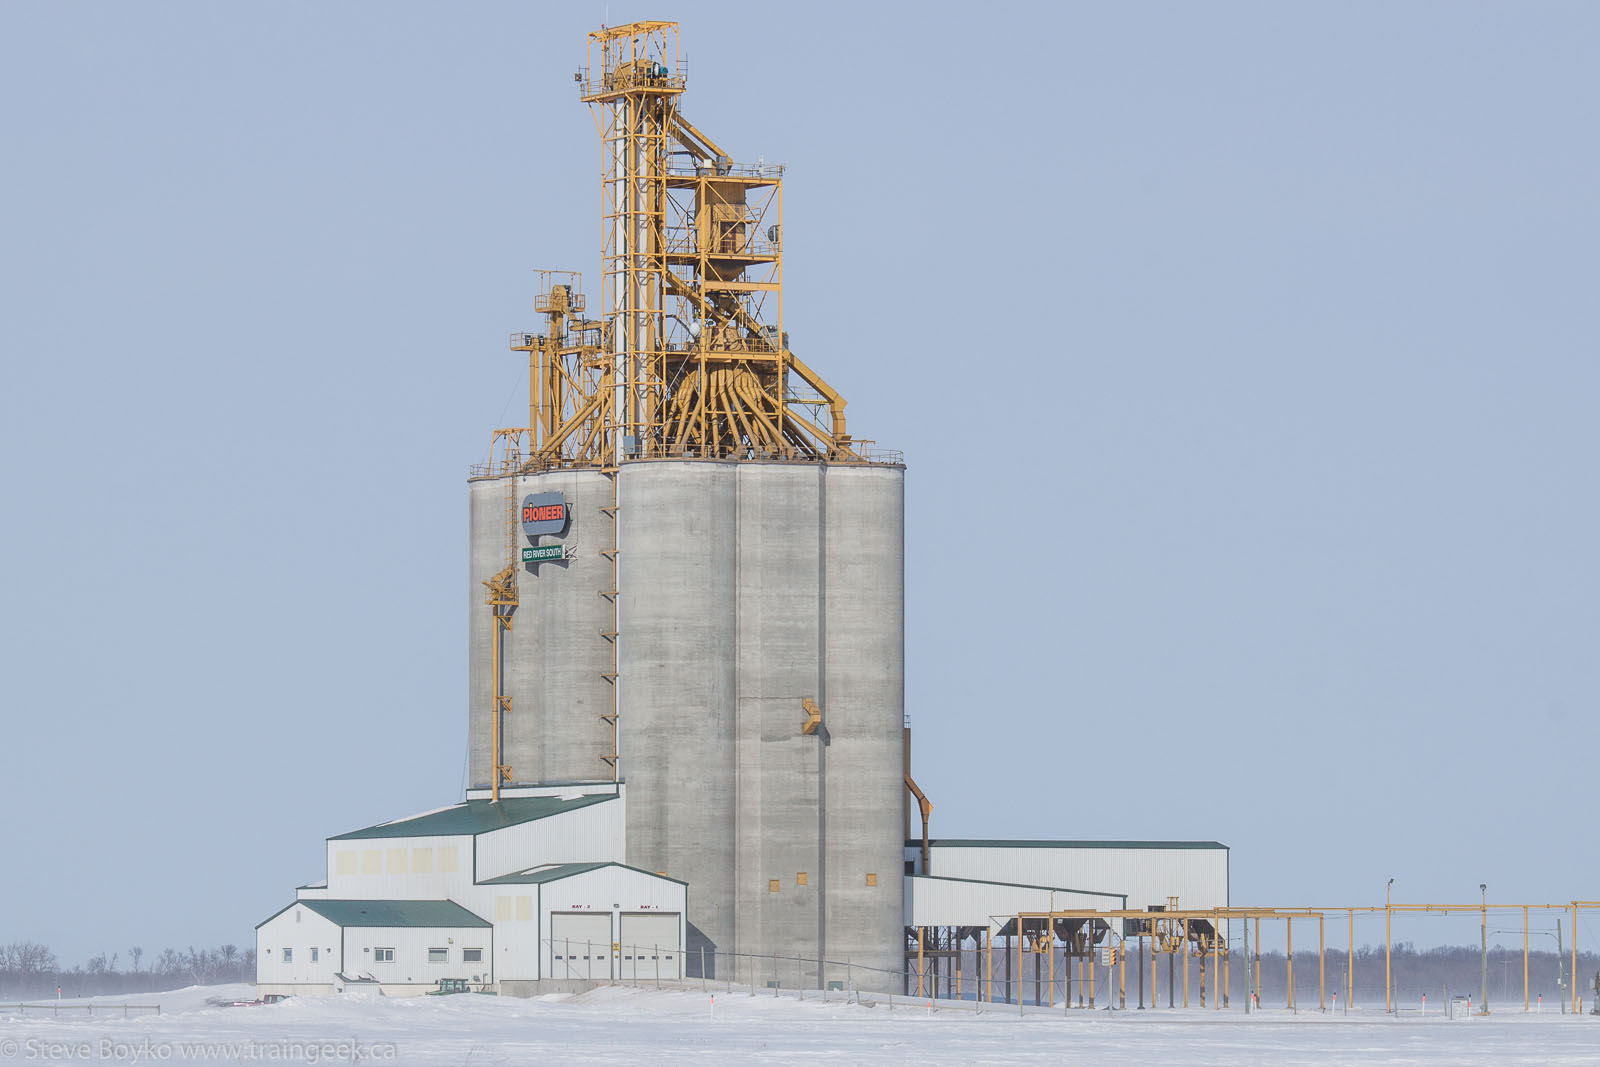 The Pioneer Red River South grain elevator in Letellier, MB 2014/02/23